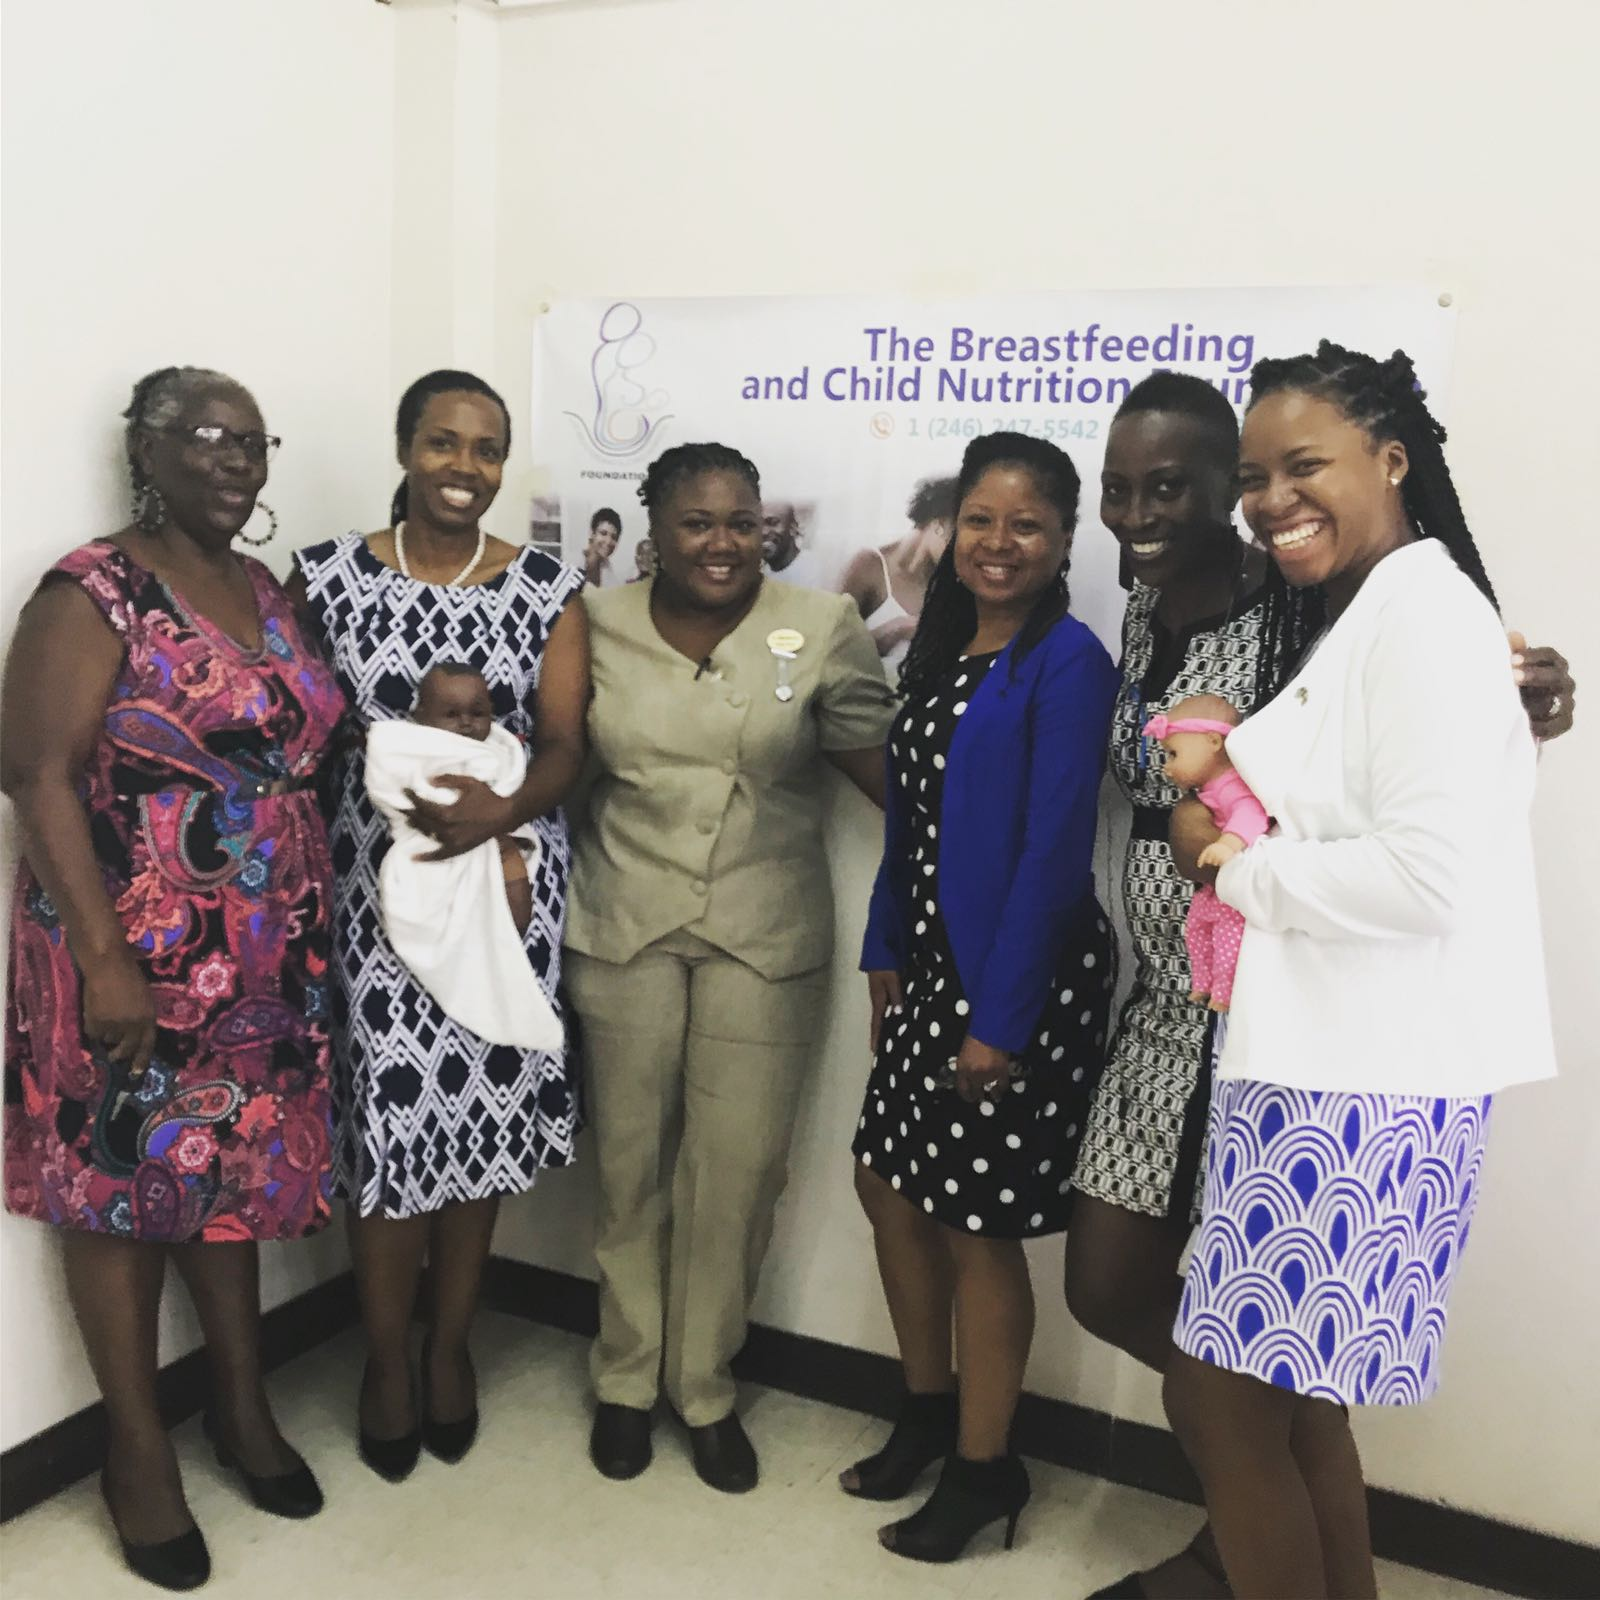 Presenters at a Breastfeeding Protection and Support Training Workshop in Barbados.